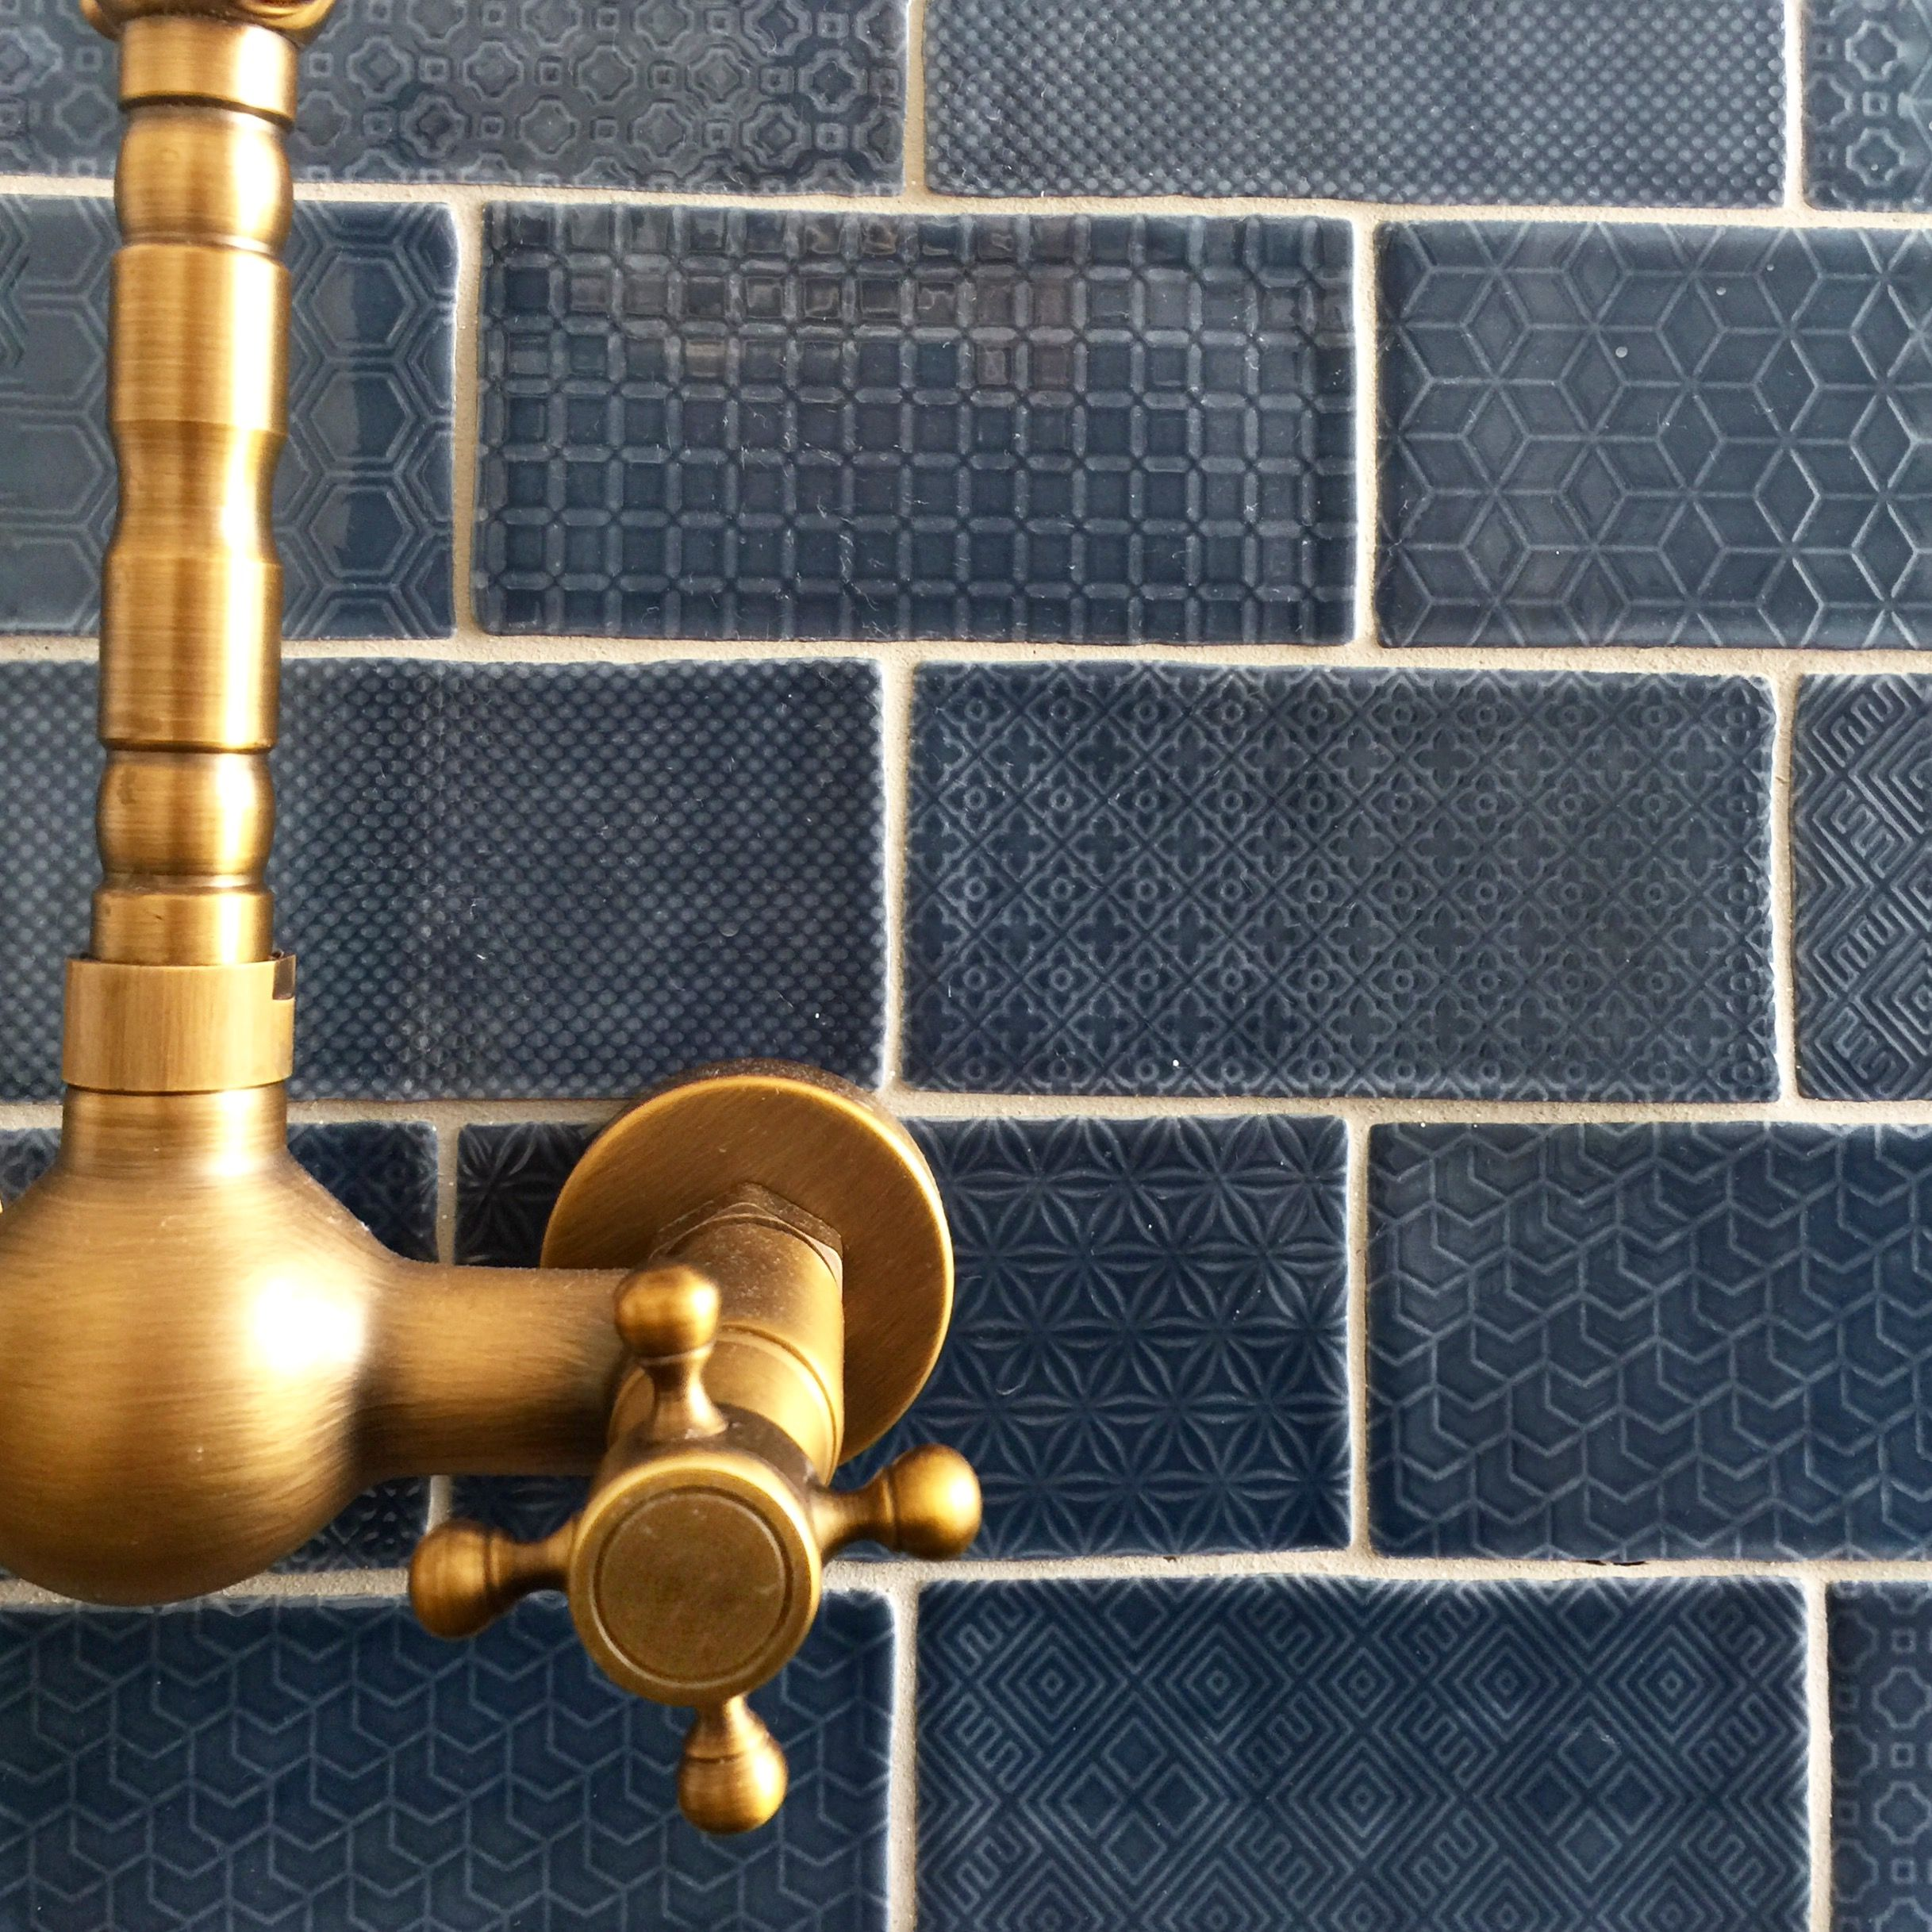 Gold tap ware and denim Blue subway tiles make up my laundry ...